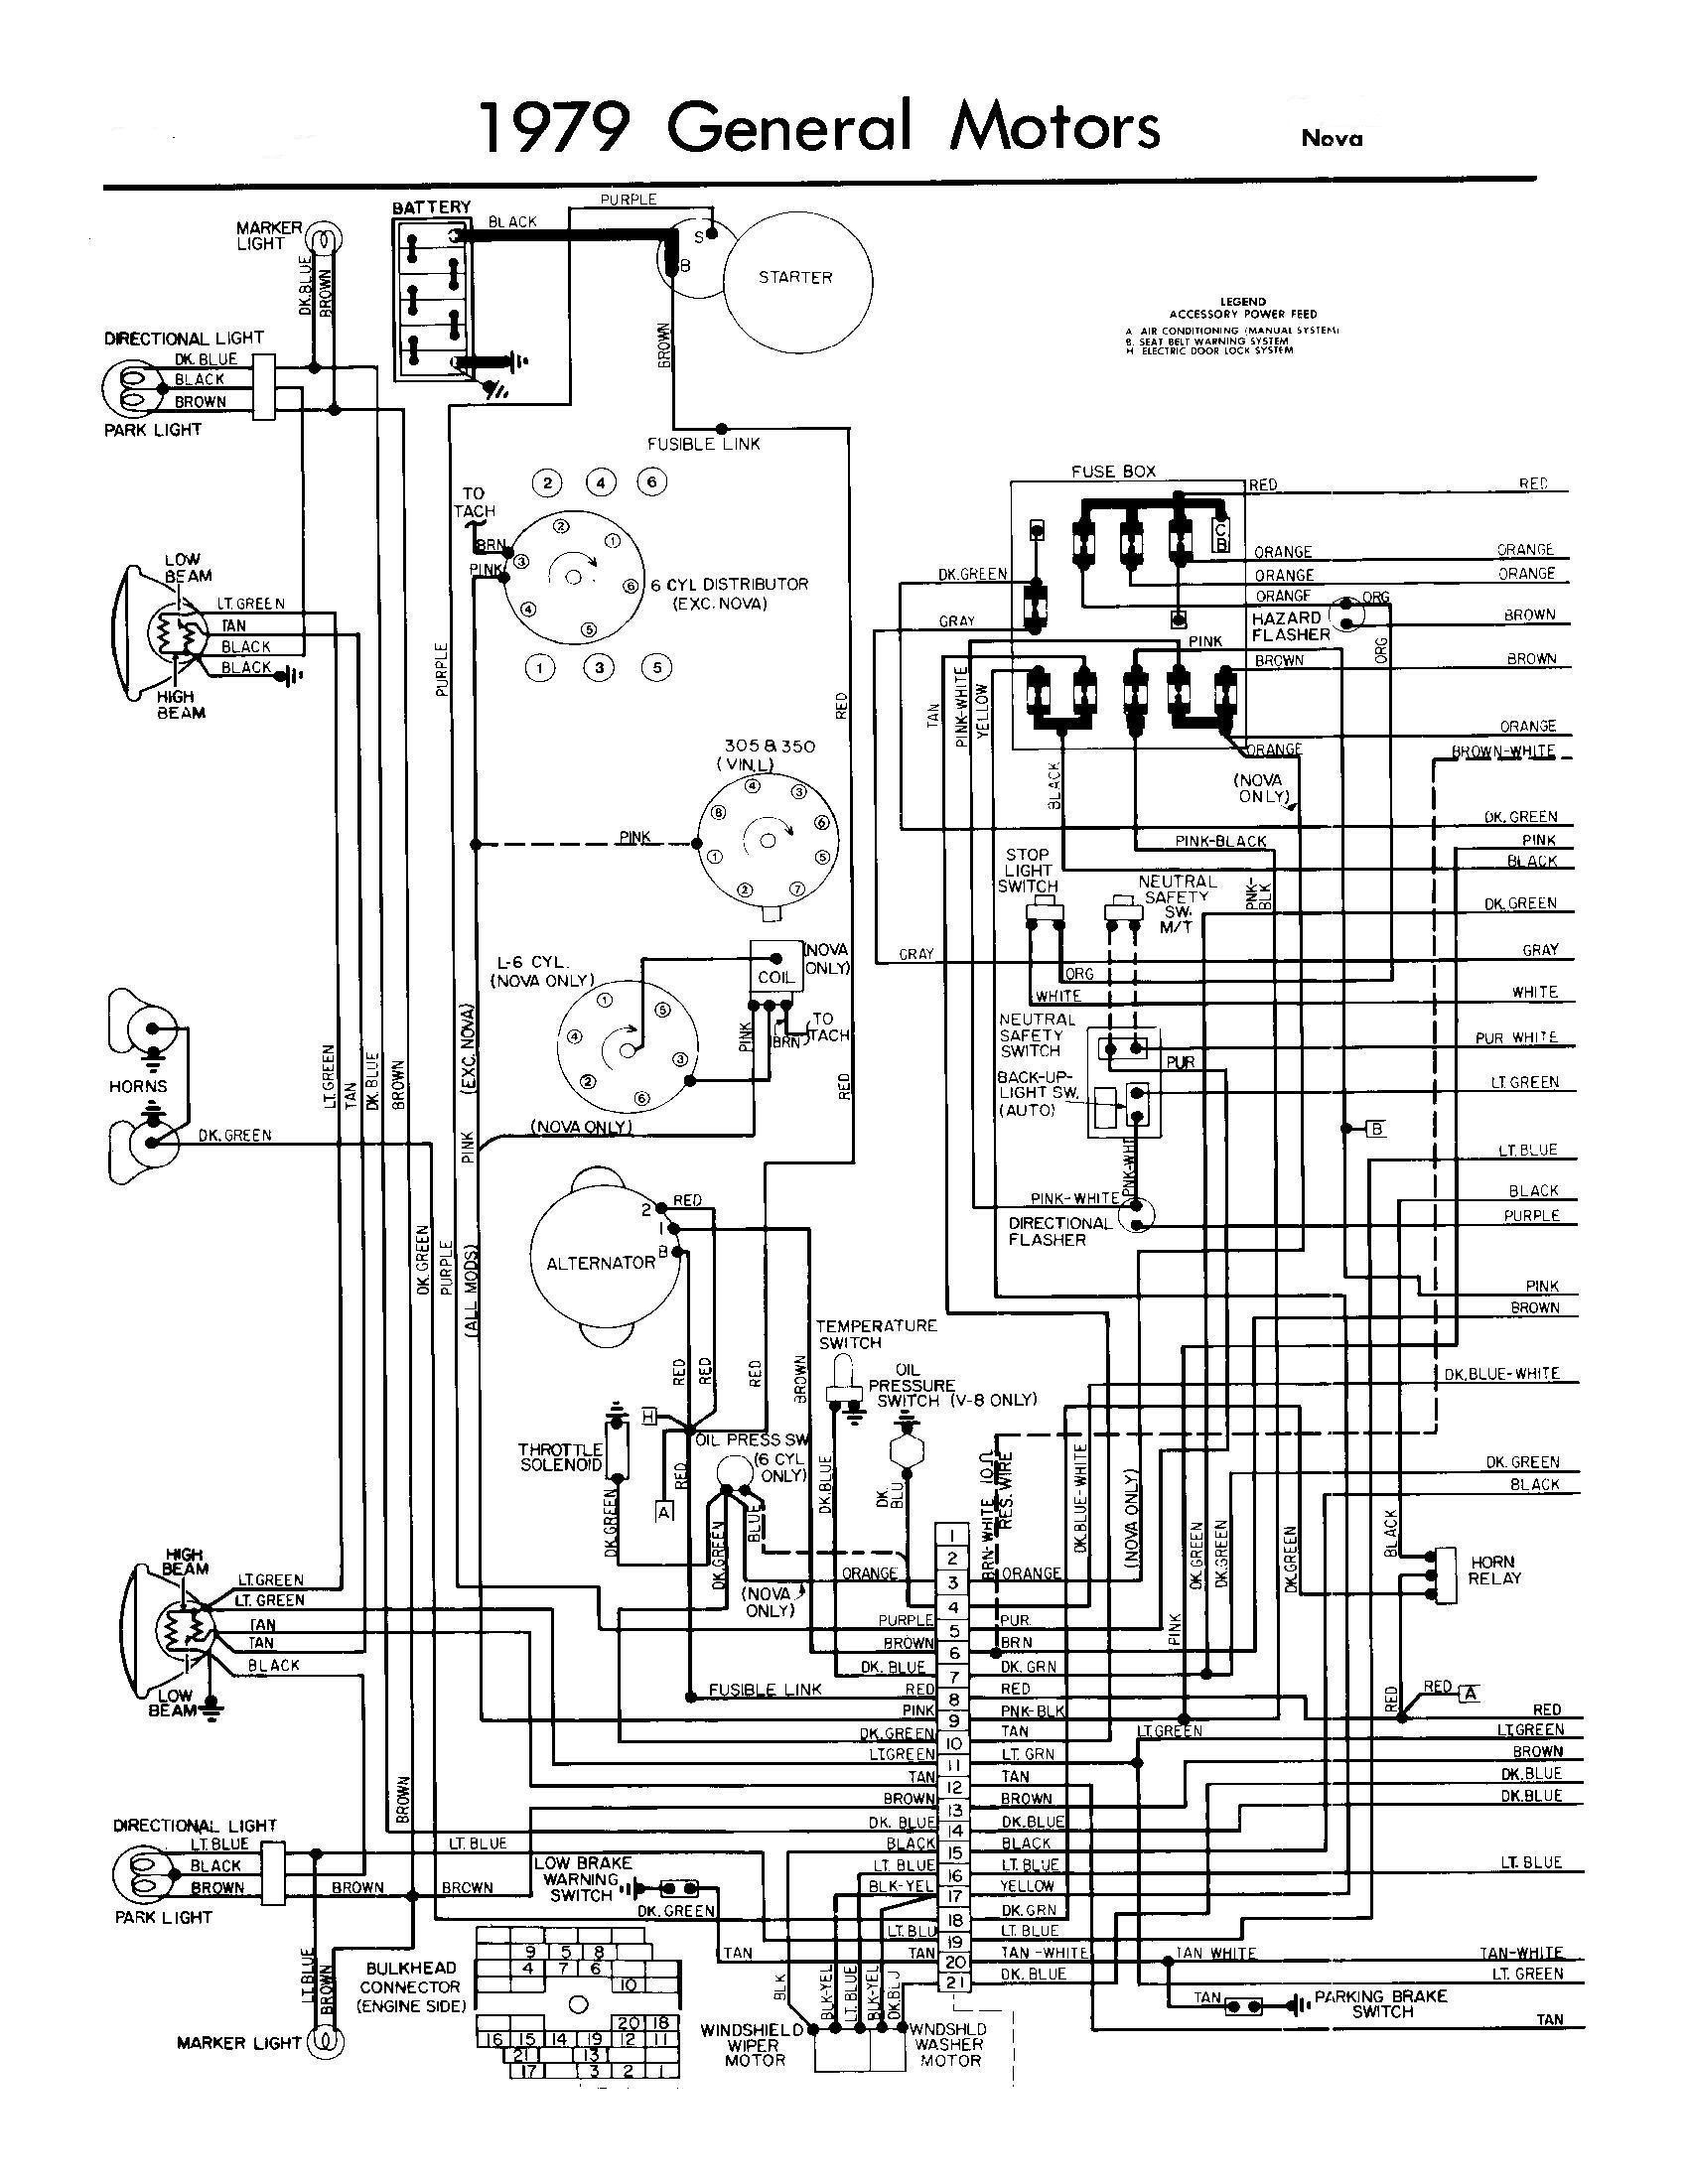 1984 chevy corvette wiring diagram